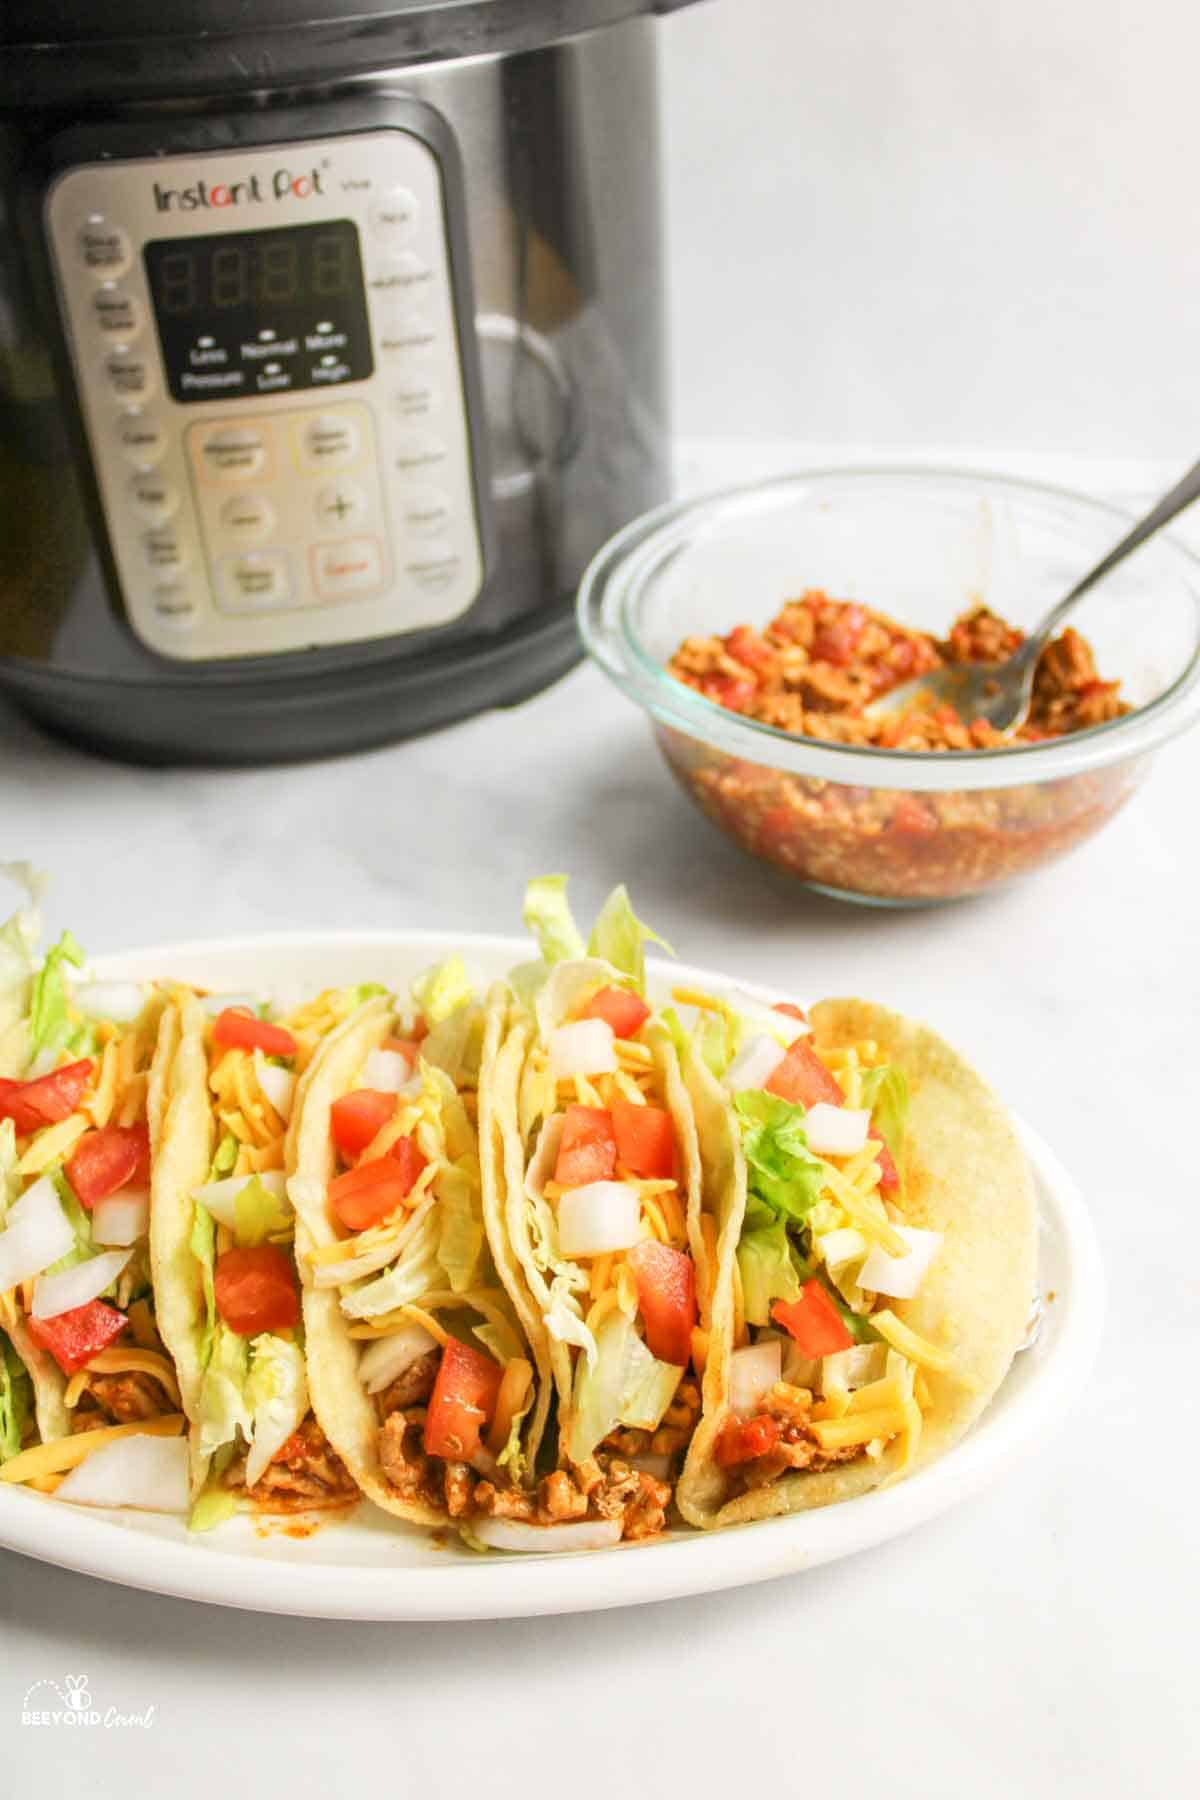 instant pot next to bowl of turkey taco meat and several turkey tacos with toppings